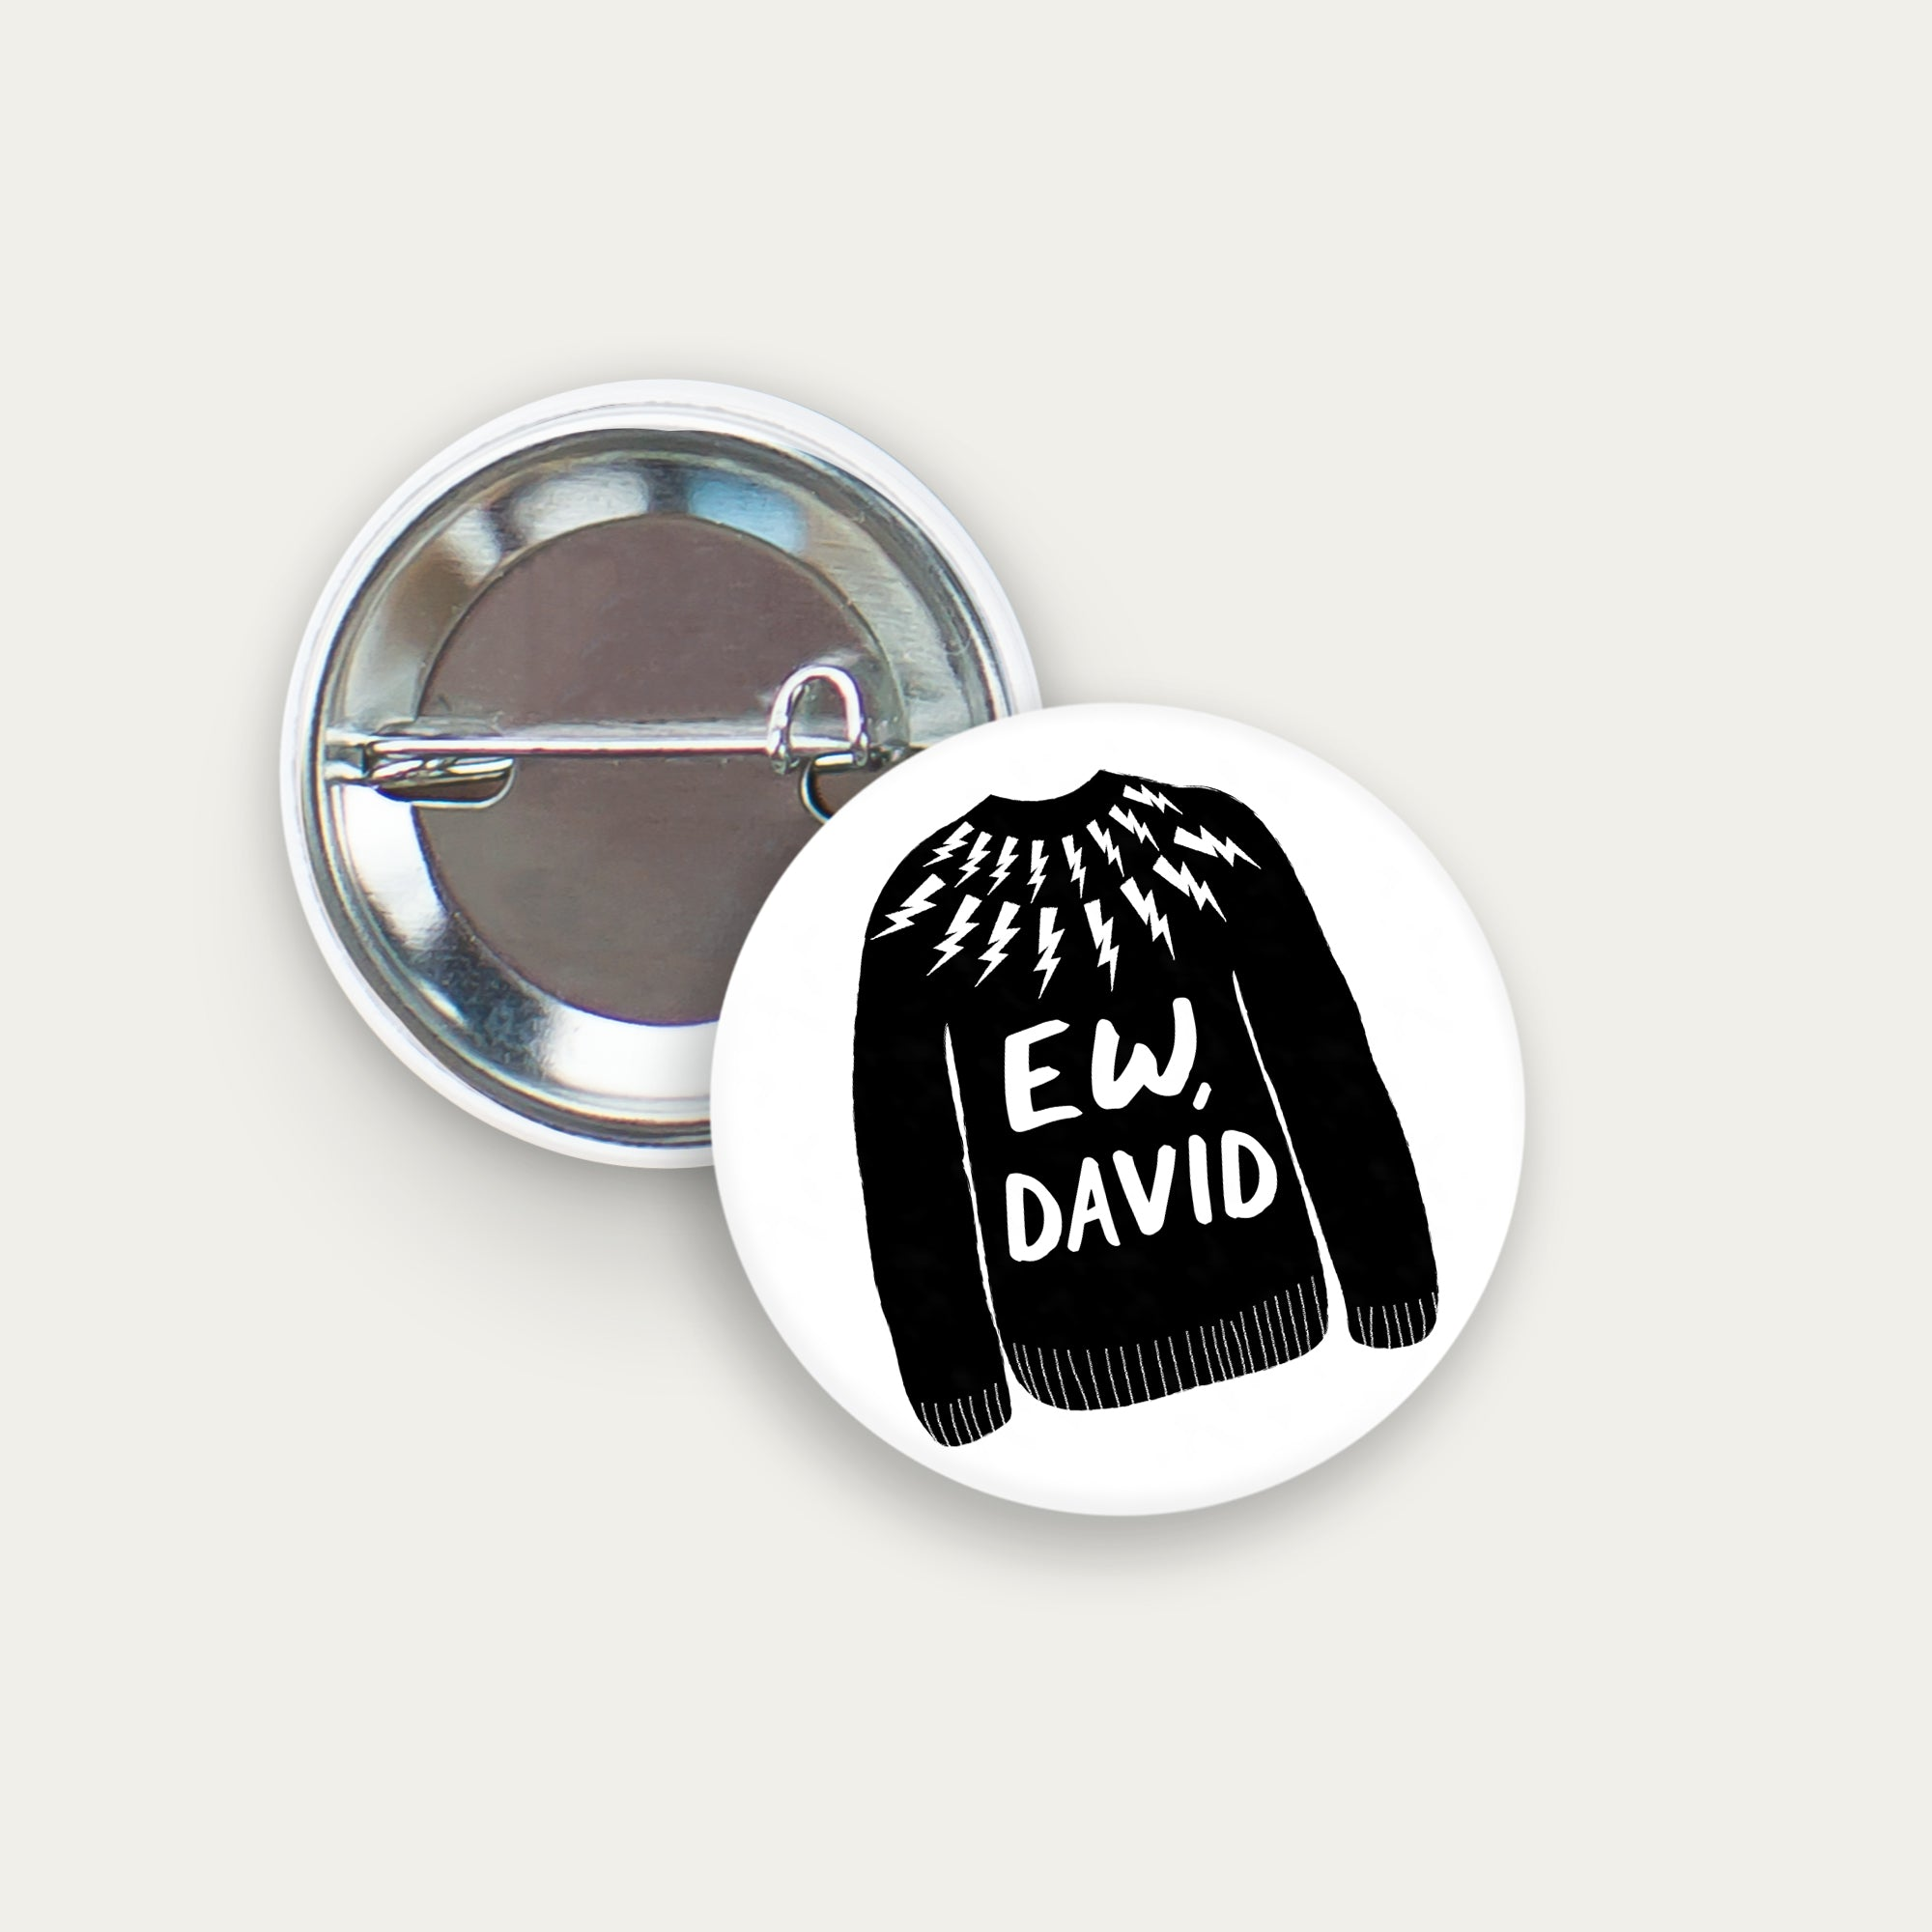 cute pin-back button, cute button, free shipping, coupon code, sale, funny button, funny pin, gift for friend, ew david, ew david button, schitt's creek, LGBTQ button, moira